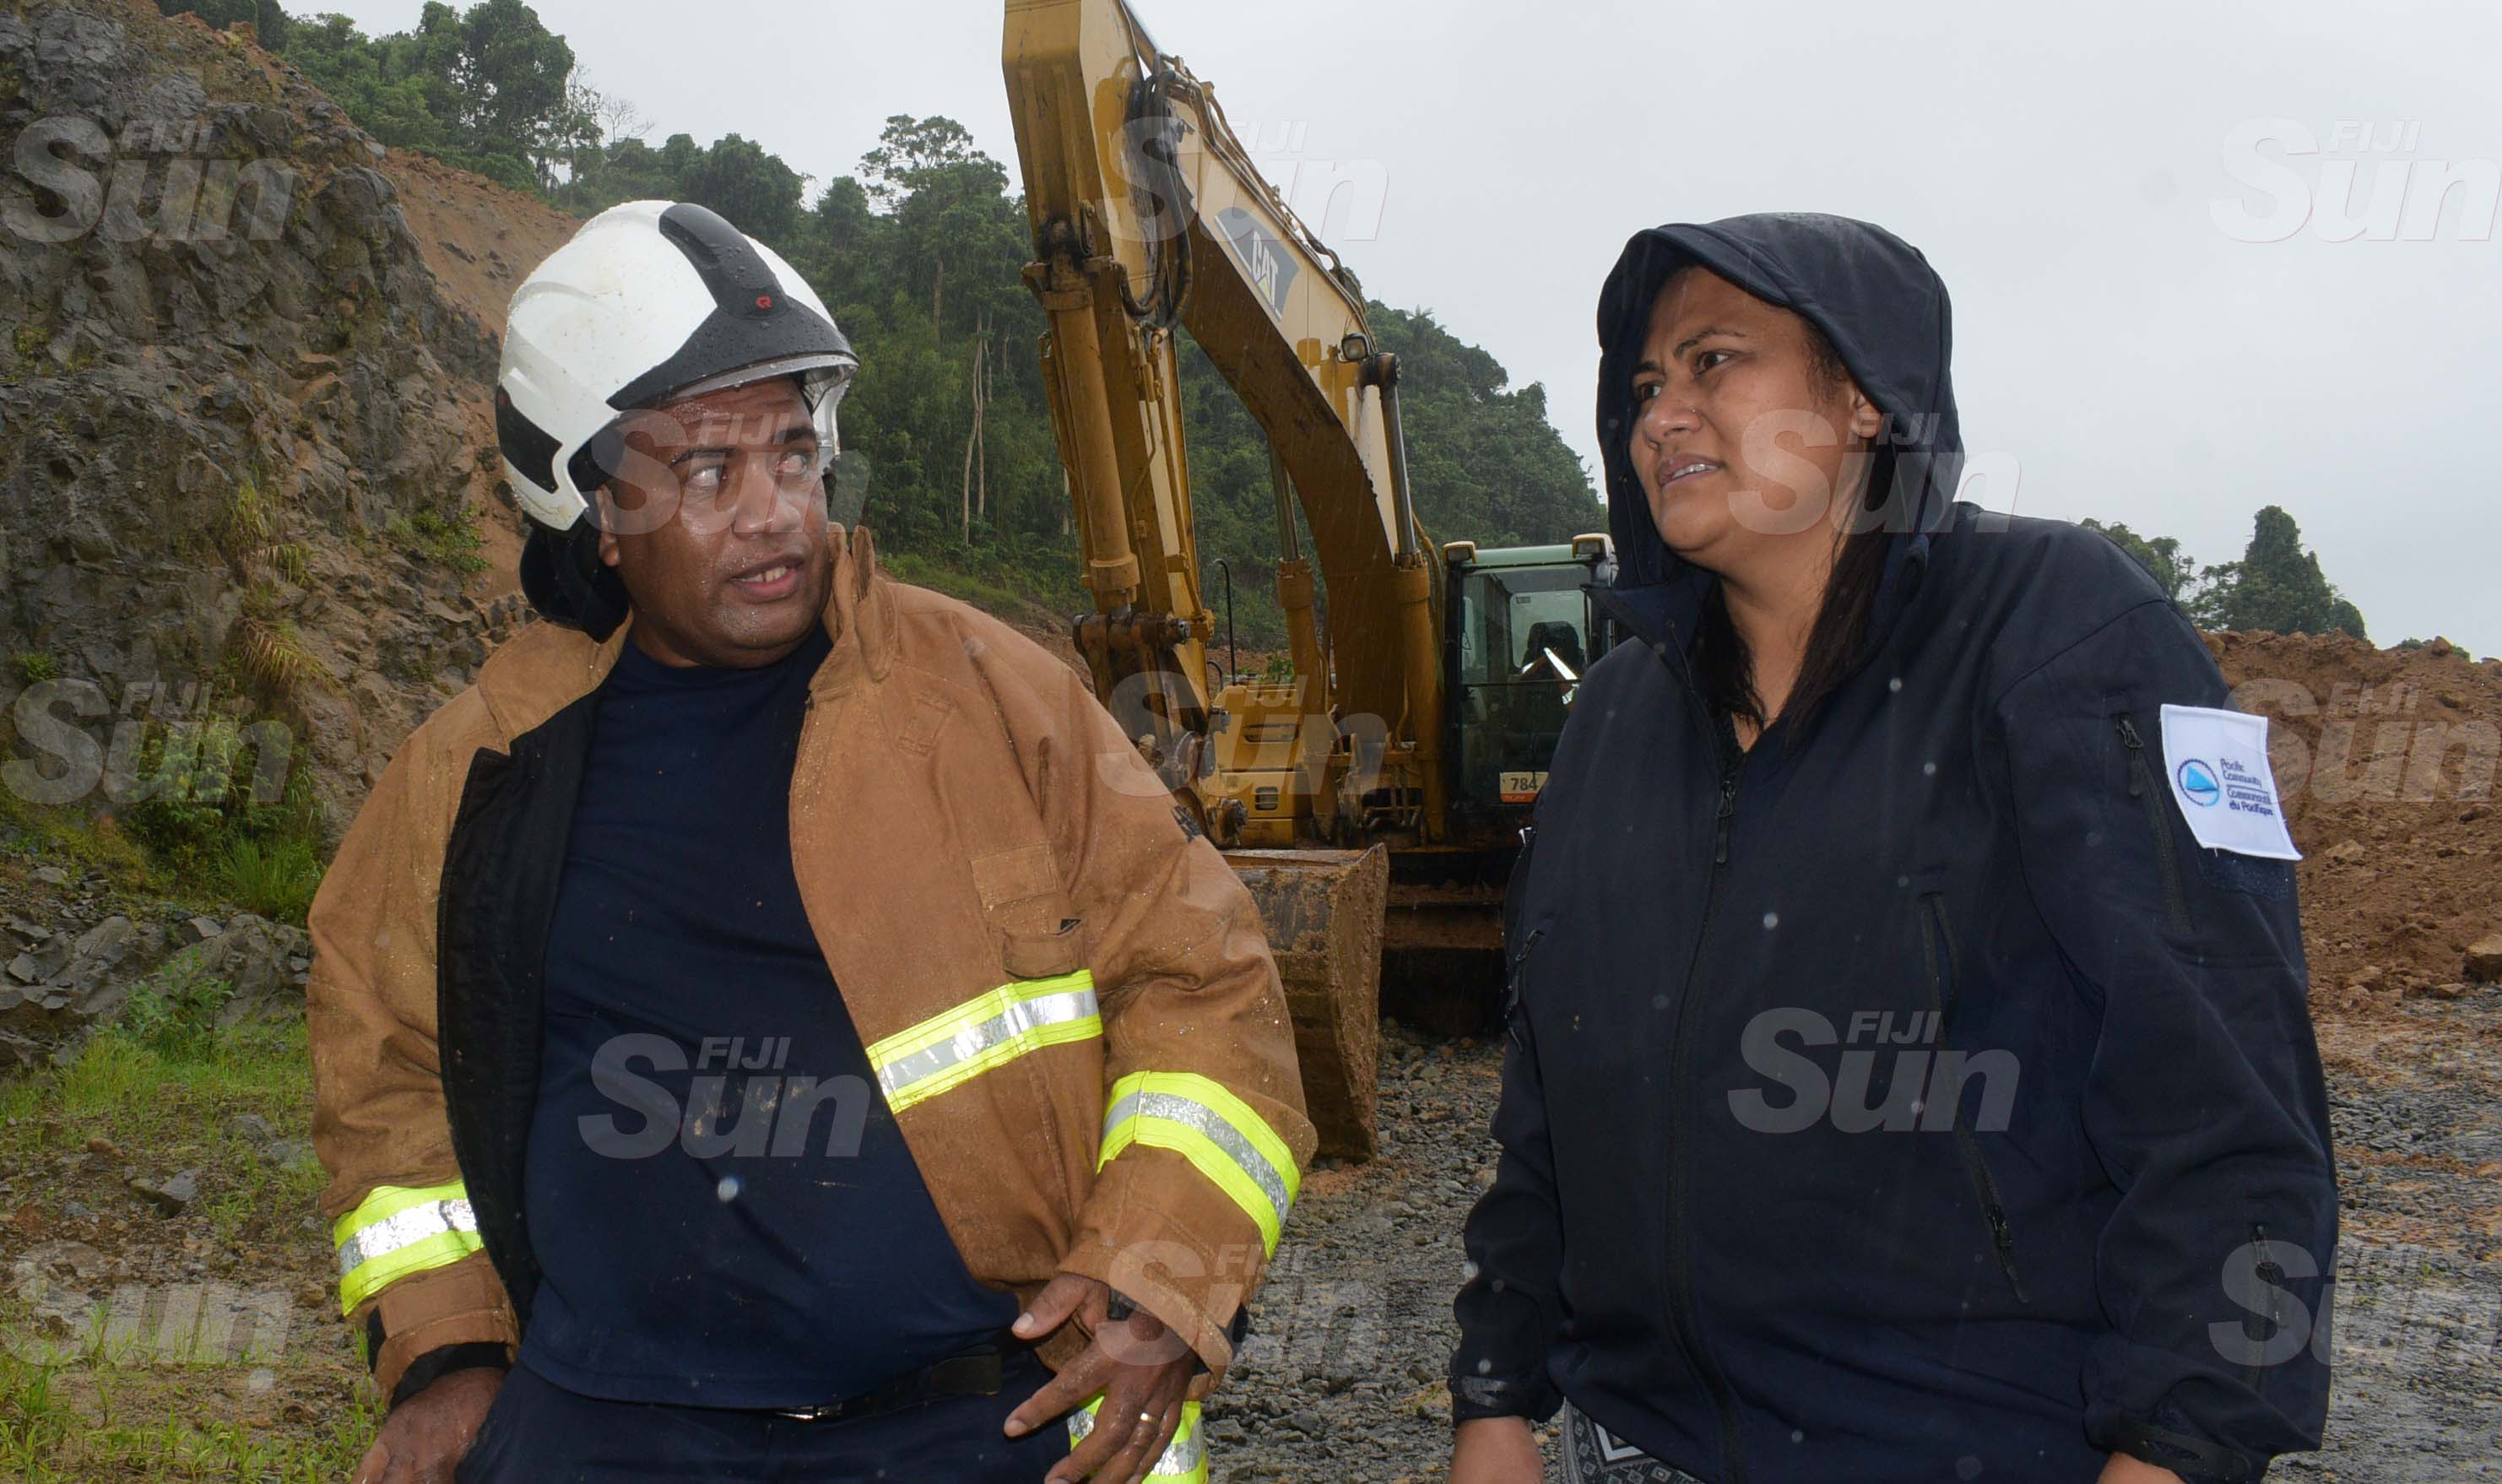 National Fire Authority Navua station officer, Vetaia Bogi (left) and Director NDMO, Vasiti Soko at Mau Quarry landslide site on March 20, 2020. Photo: Ronald Kumar.